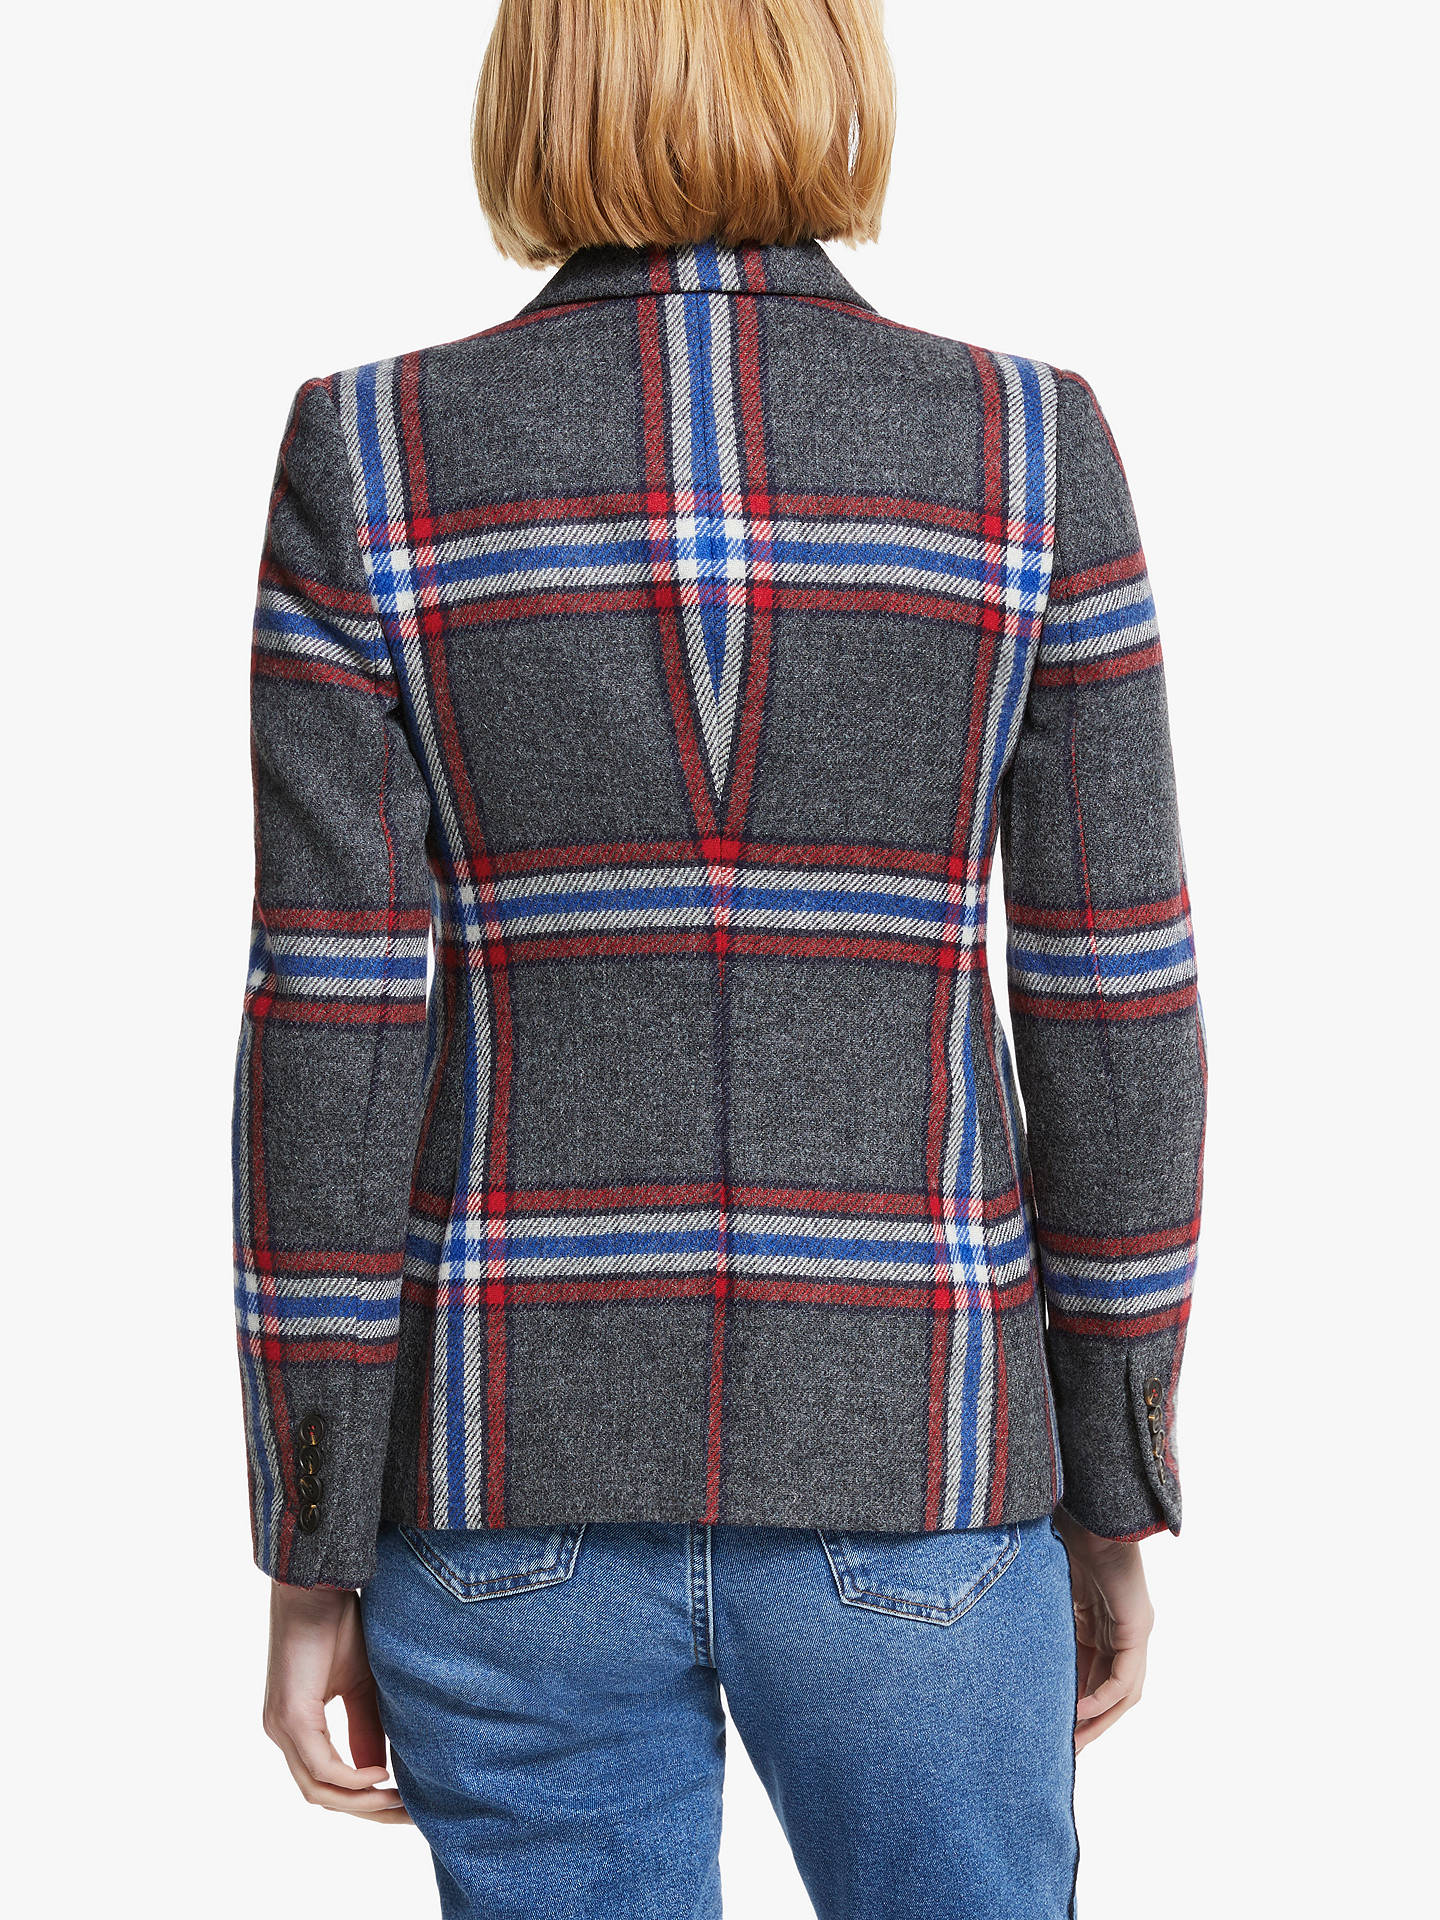 Buy Boden Smyth British Tweed Check Blazer, Red/Grey, 8 Online at johnlewis.com